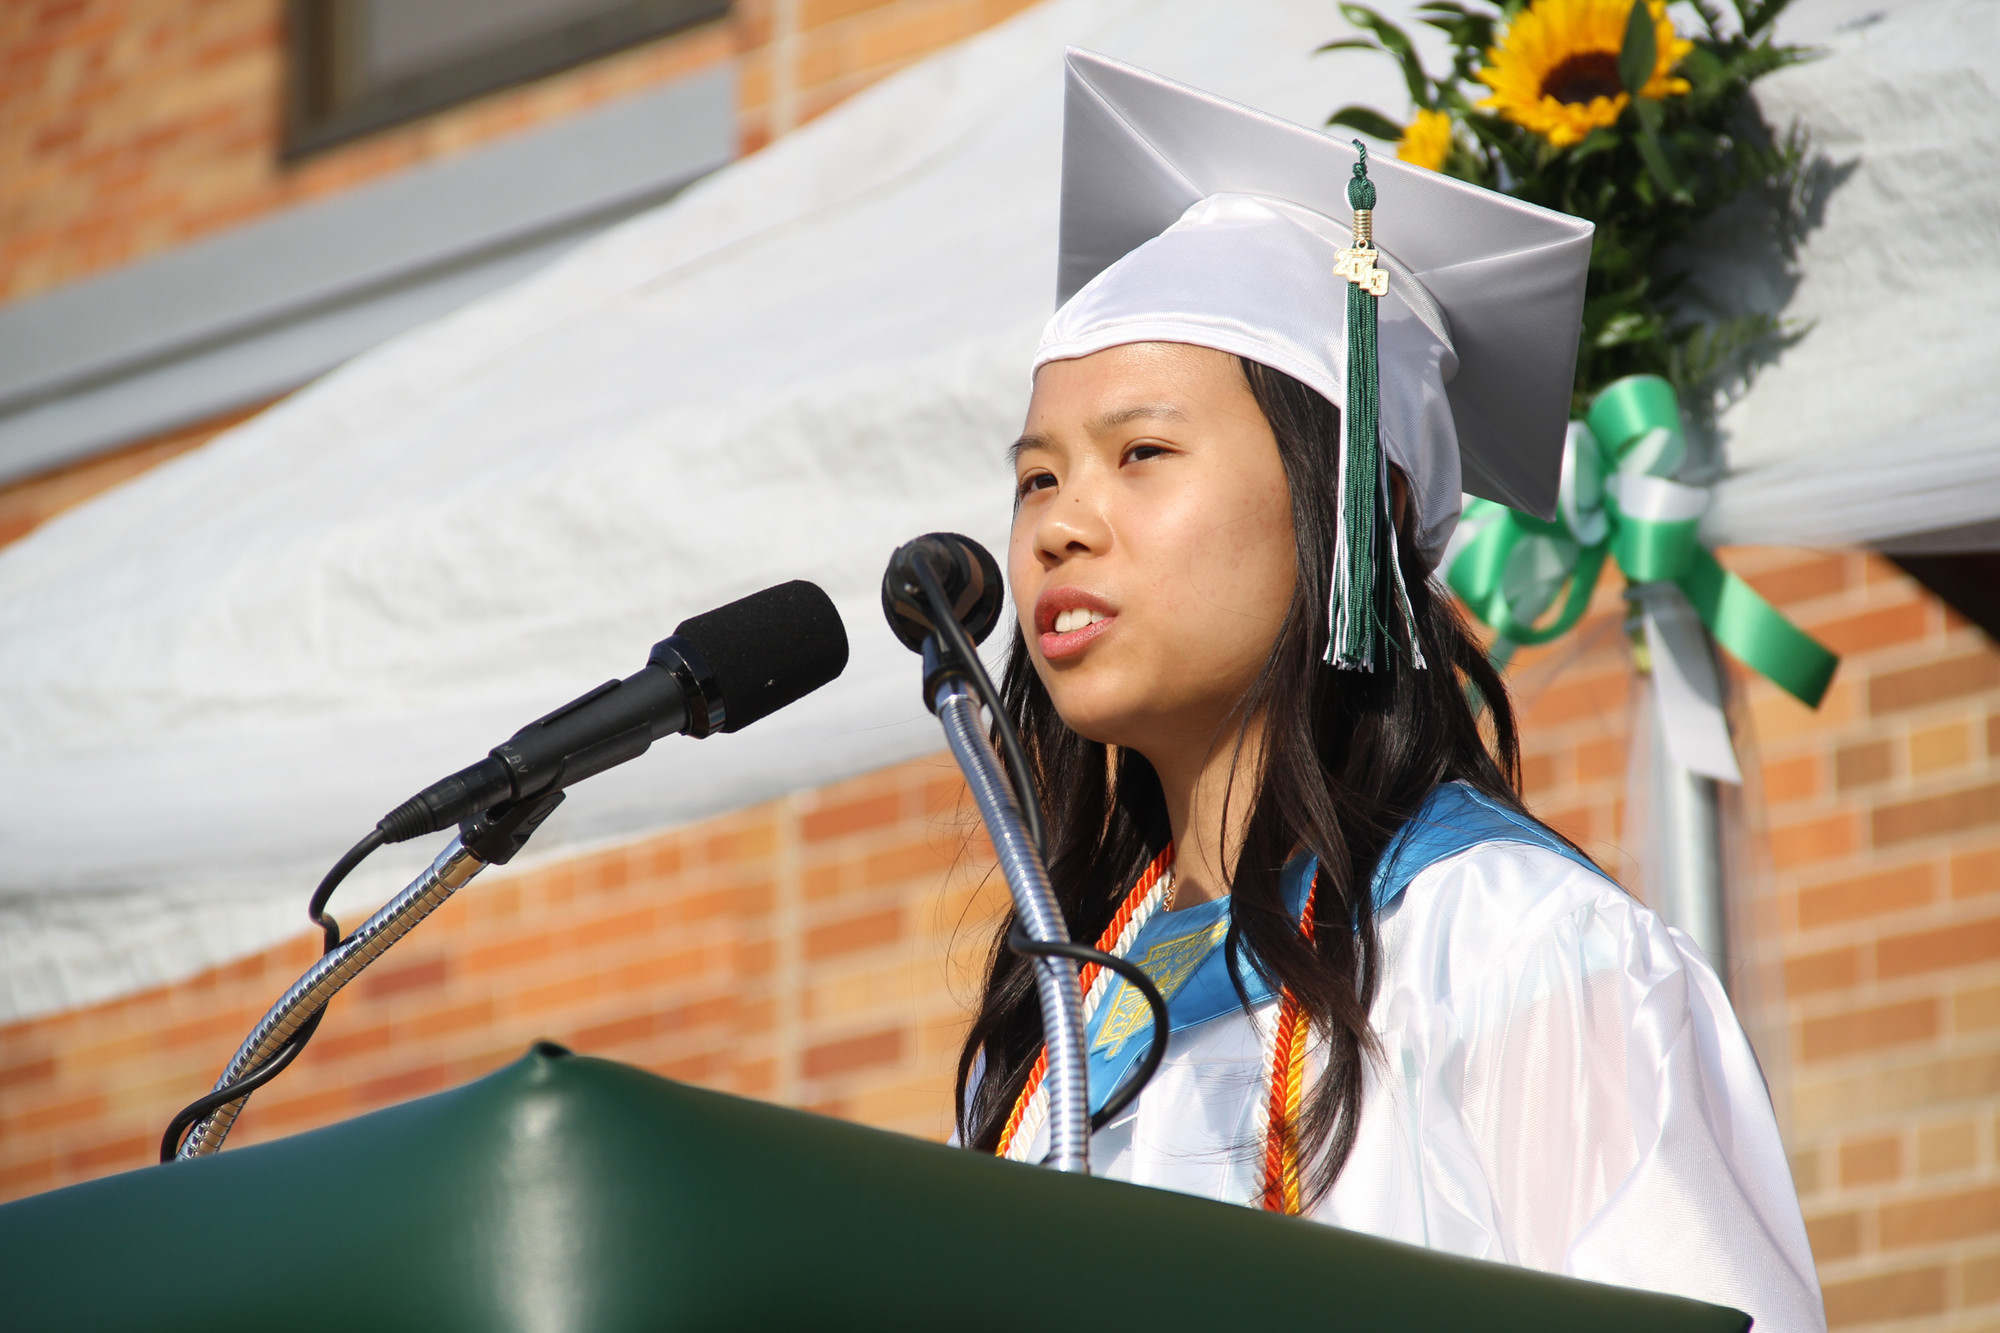 Valedictorian Michelle Chen encouraged her fellow graduates to live life to the fullest.